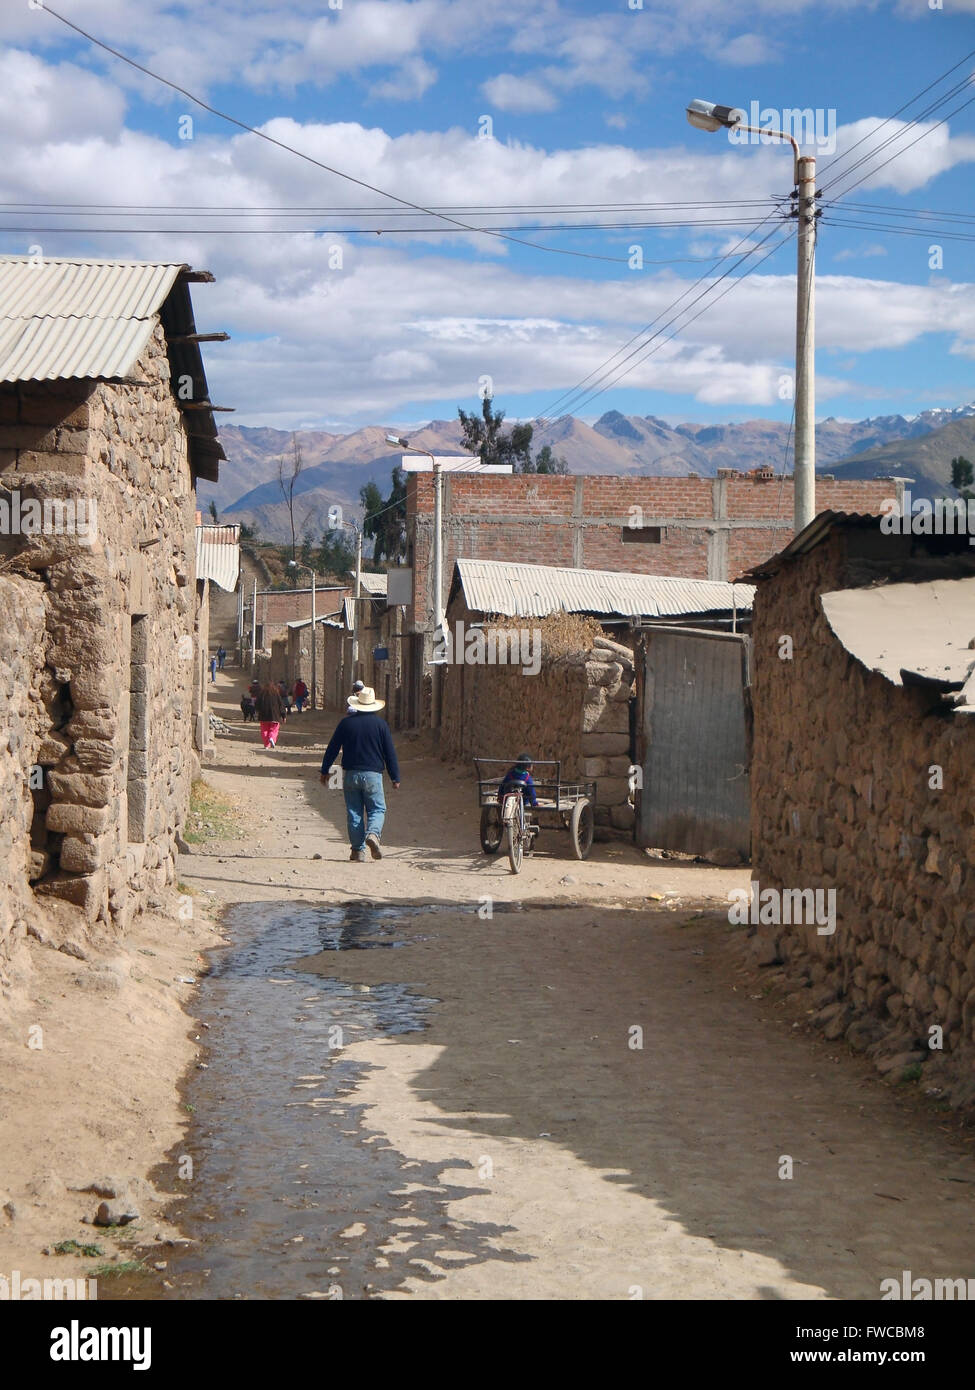 Small Village At Colca Canyon In Peru South America Stock Photo Alamy,Barefoot Contessa Pioneer Woman Meatloaf Recipe